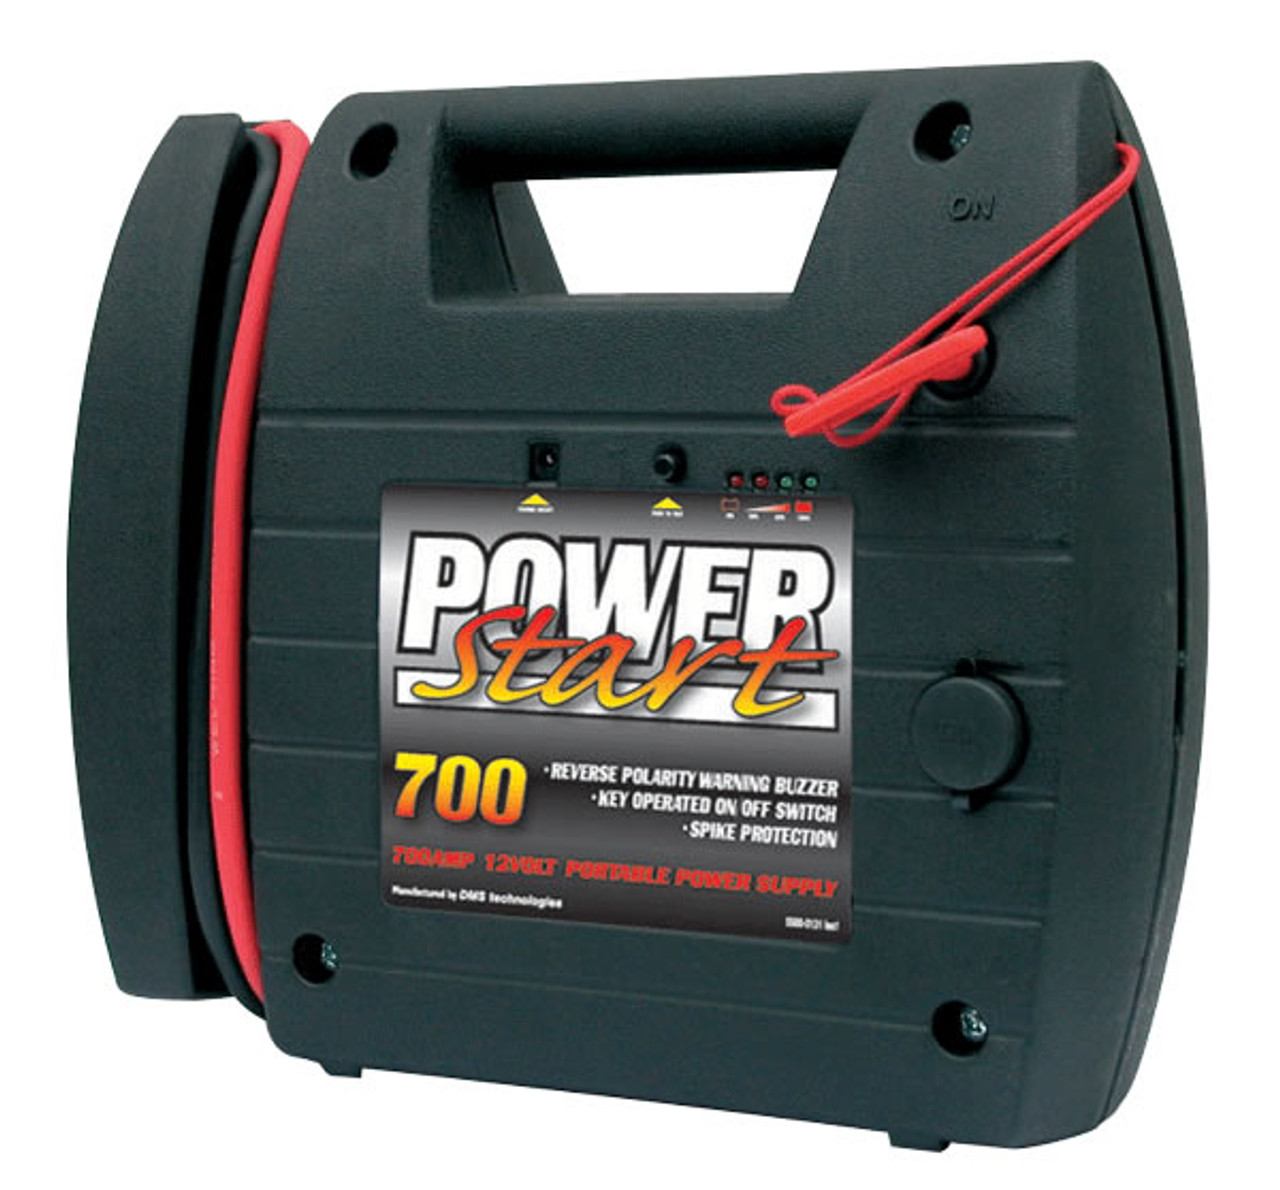 POWER START PS 700 - 12V BOOSTER PACK